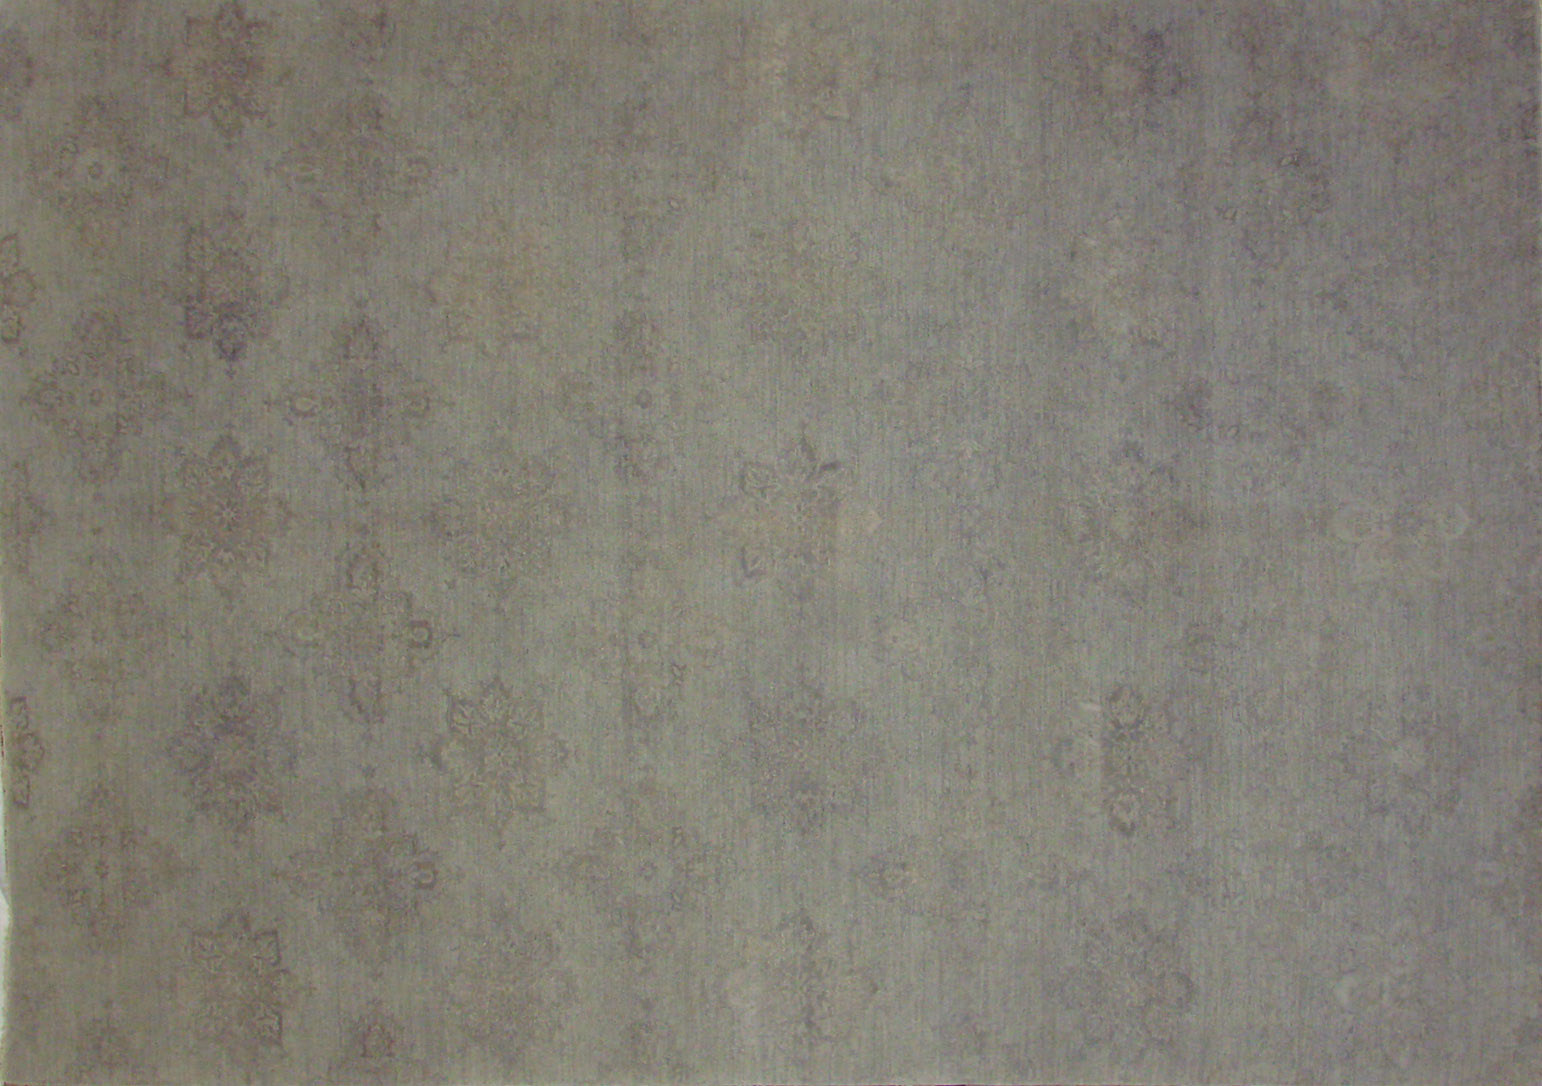 10x14 Contemporary Hand Knotted Wool Area Rug - MR021822